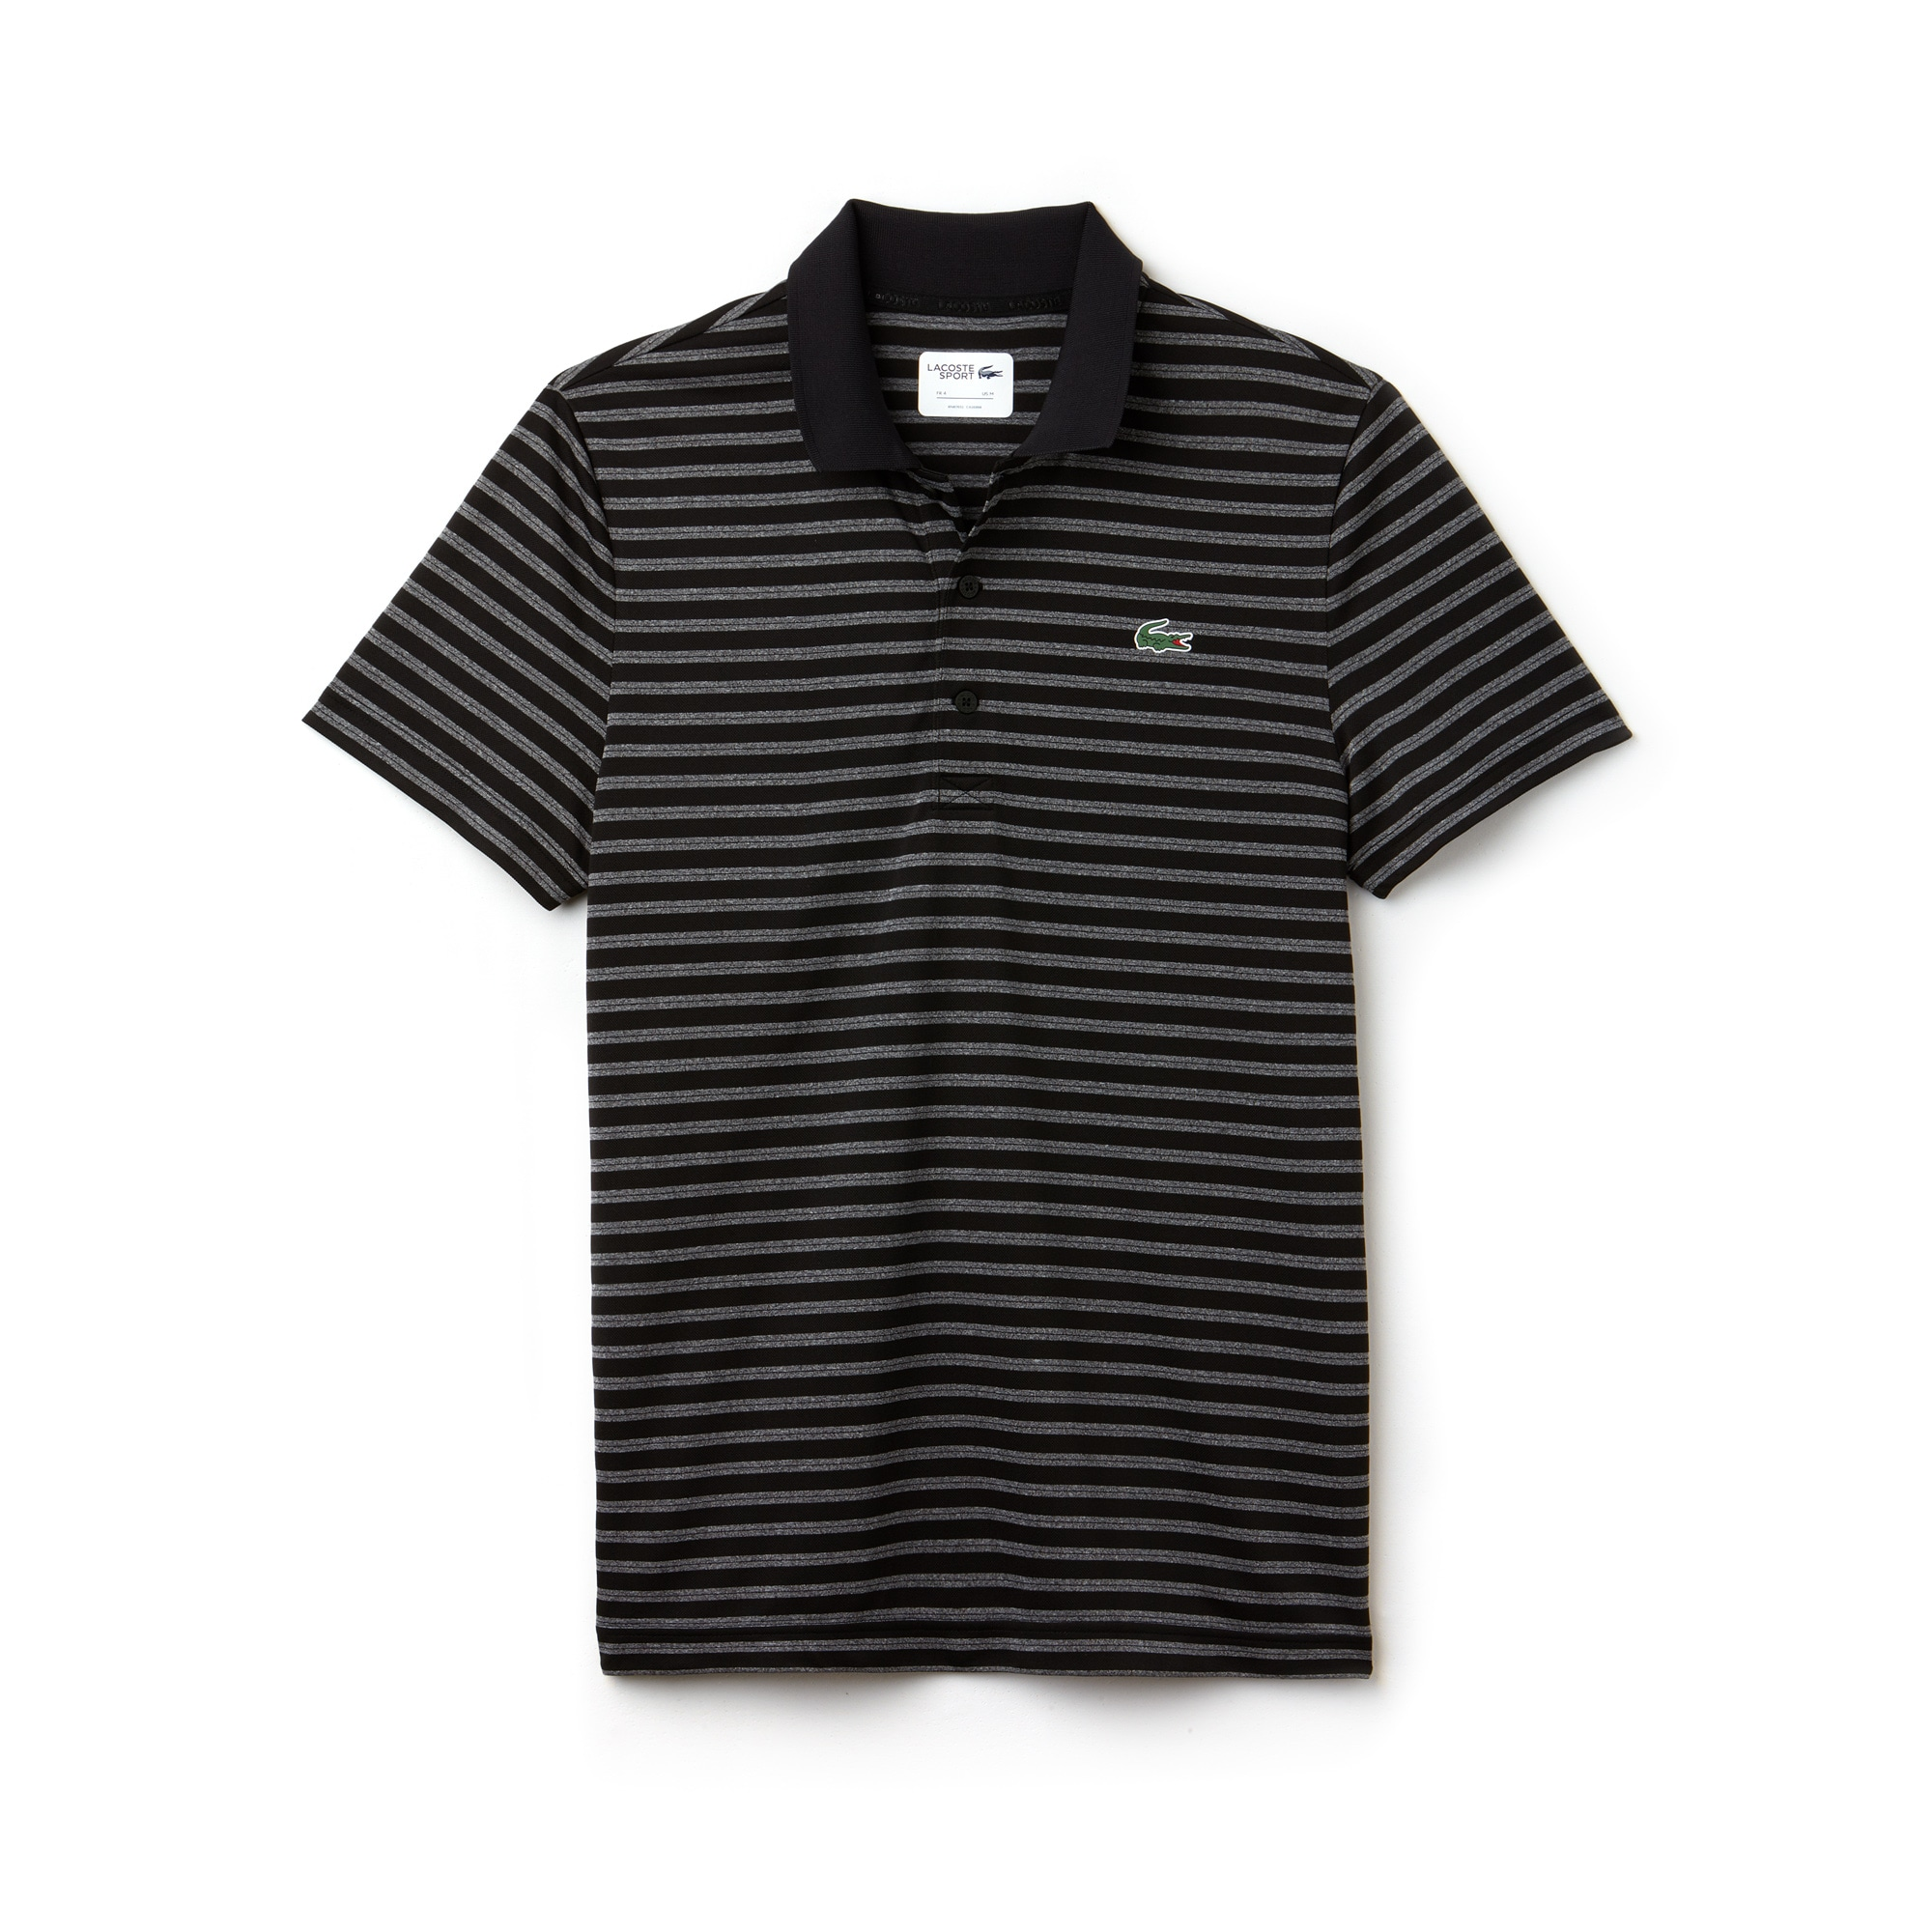 라코스테 스포츠 반팔 카라티 Lacoste Mens SPORT Striped Technical Jersey Golf Polo,black/white